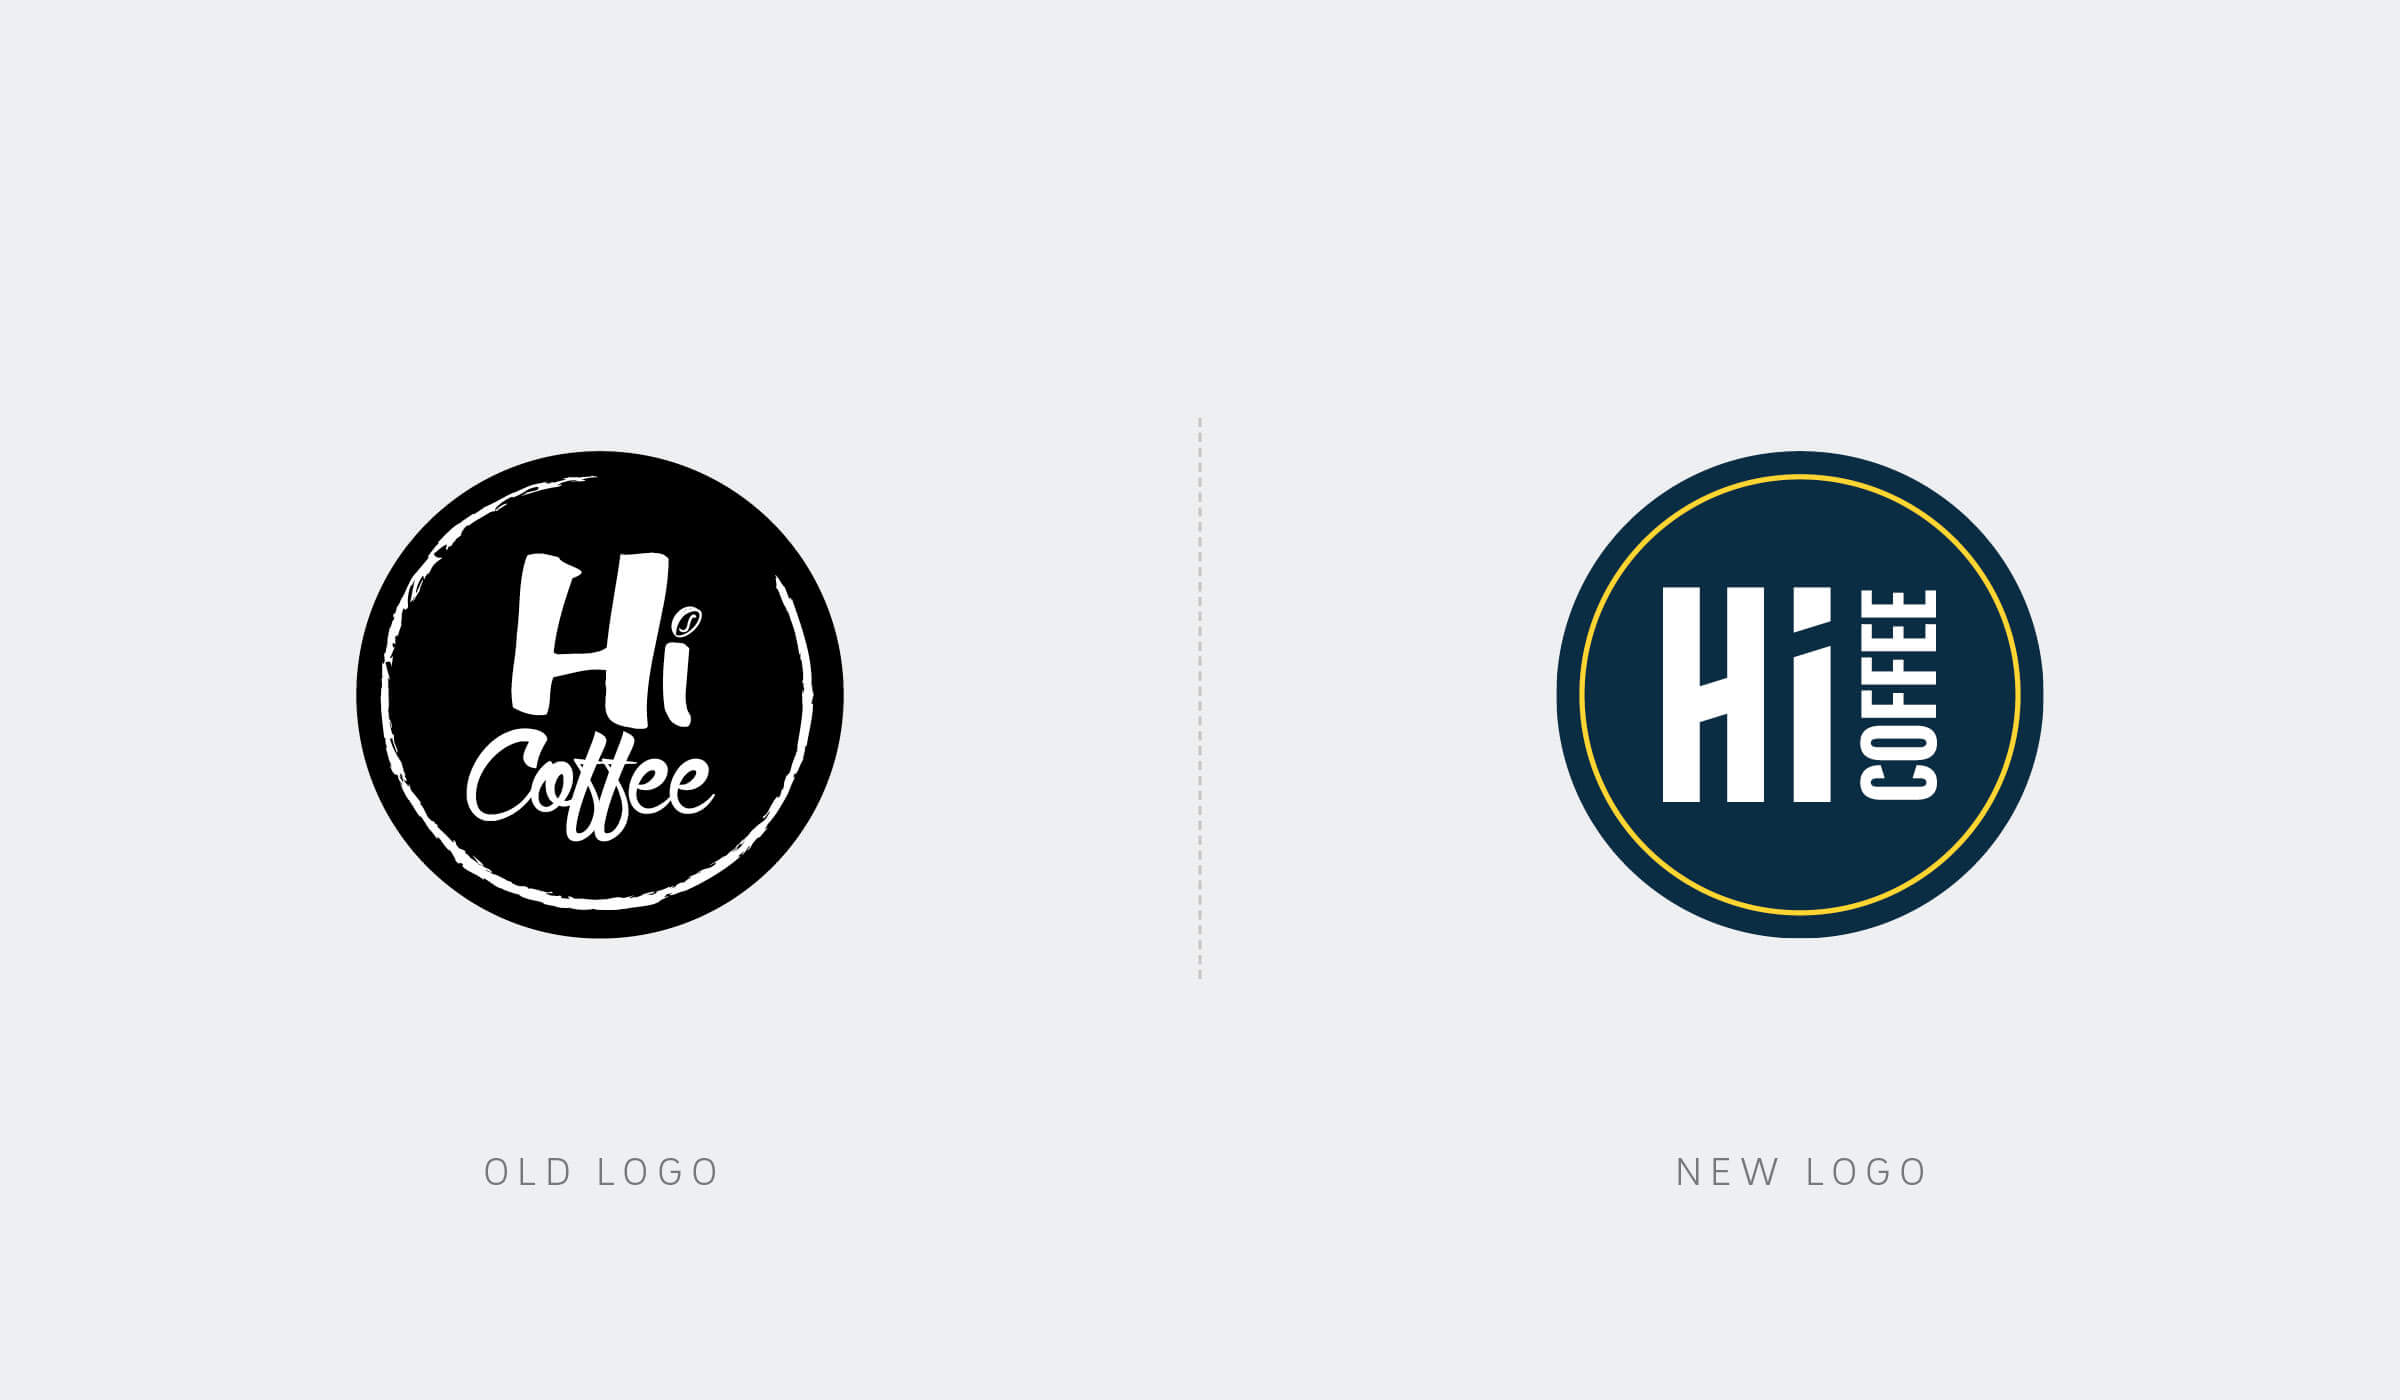 Hi Coffee logo design before/after